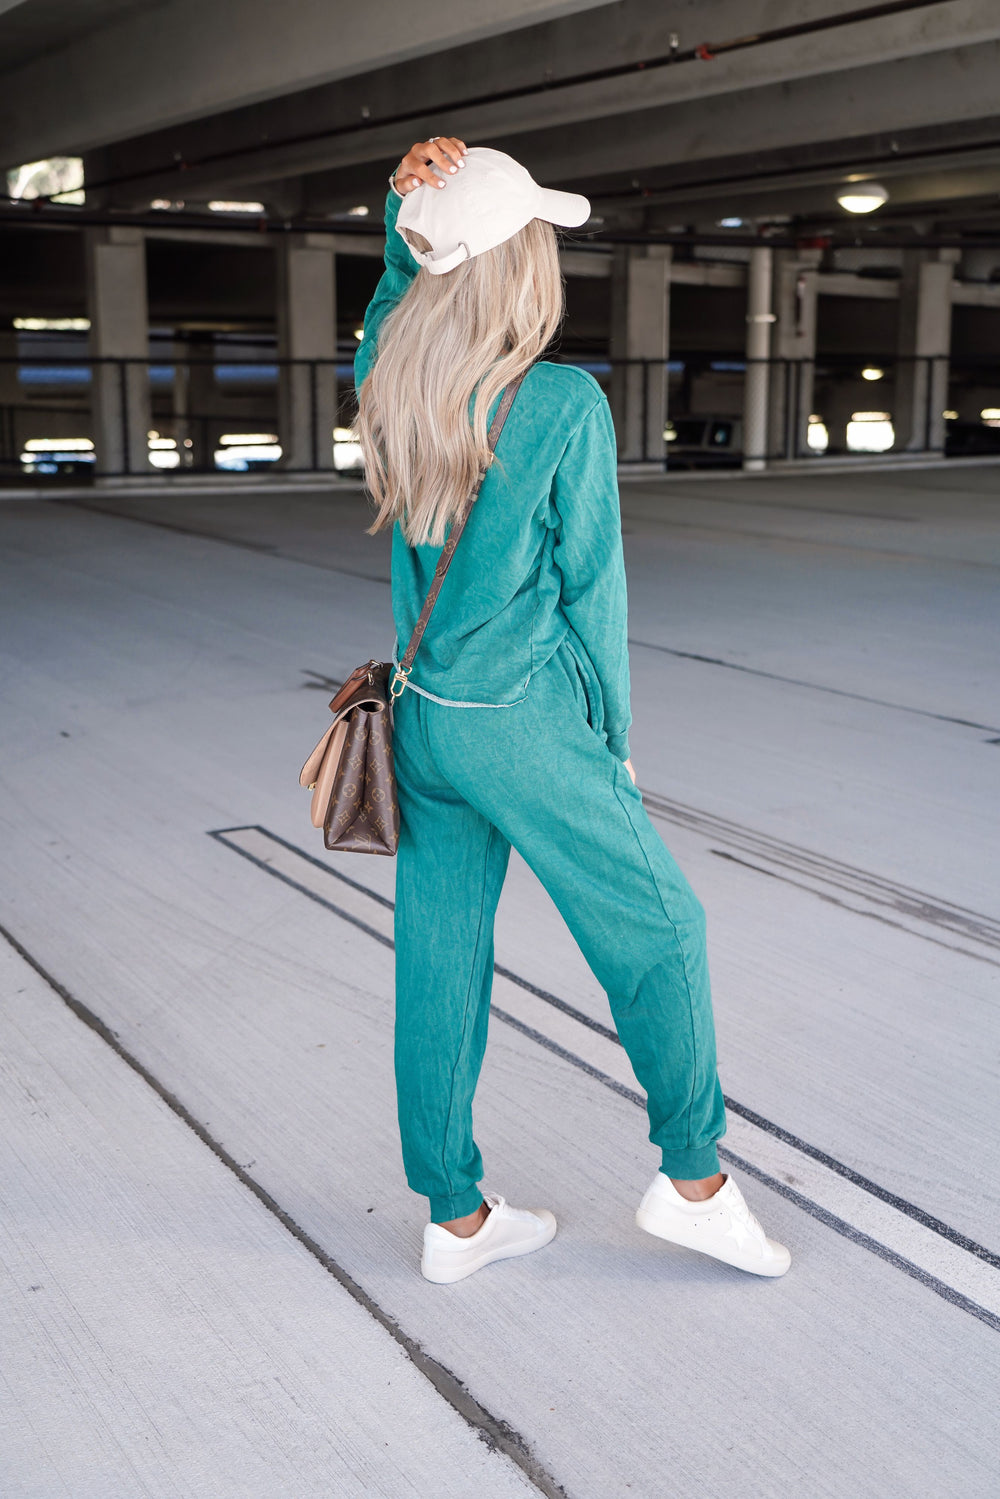 RESTOCK Fireside Vintage Joggers - Evergreen Inspired by Kristin Coffey Pressley